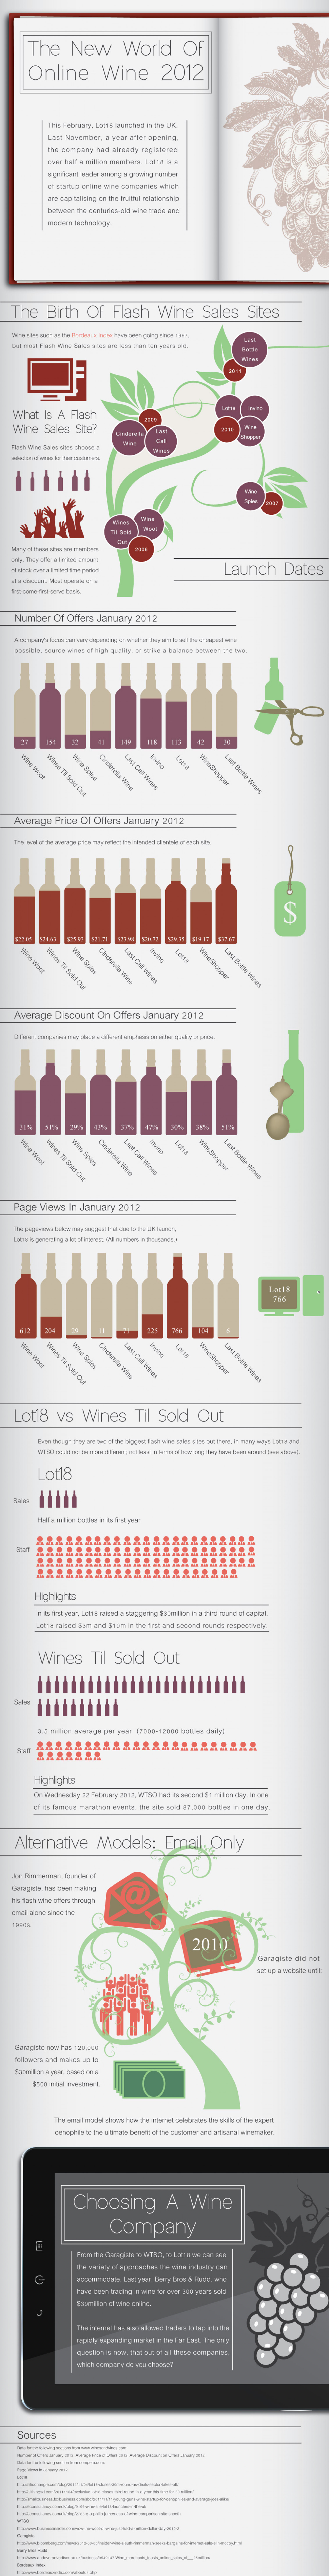 The New World of Online Wine 2012 Infographic